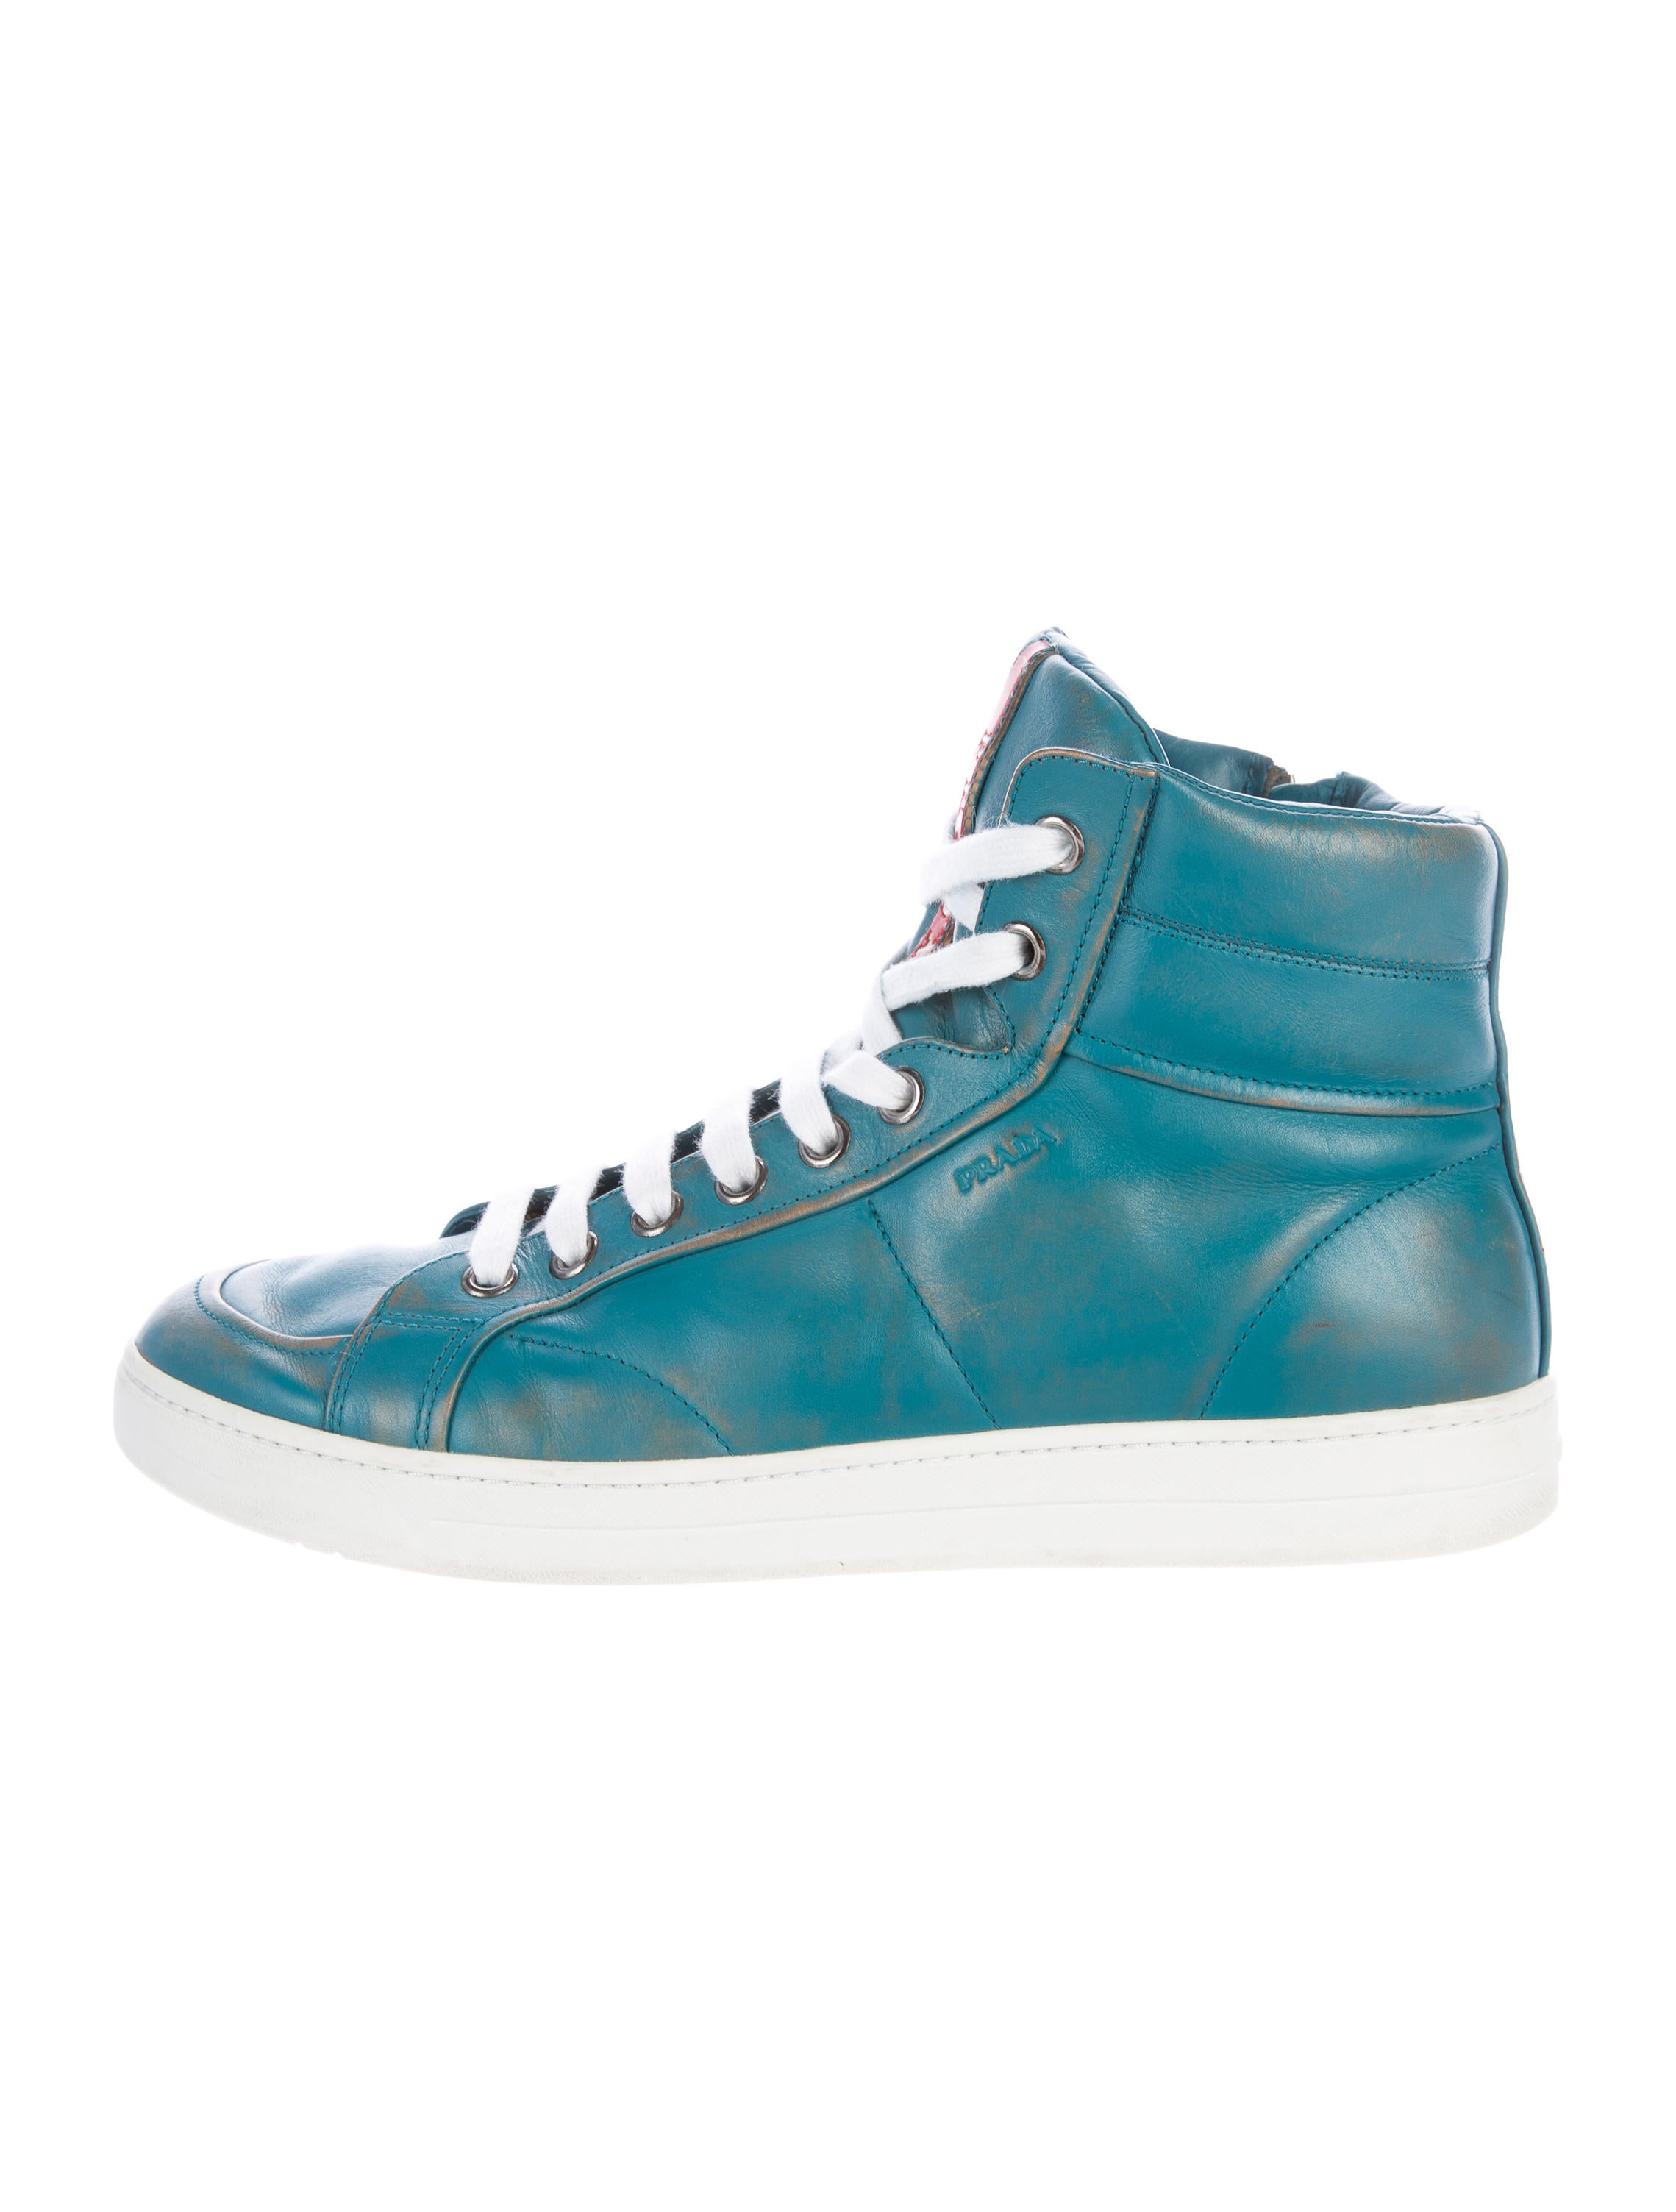 prada sport leather high top sneakers shoes wpr38655